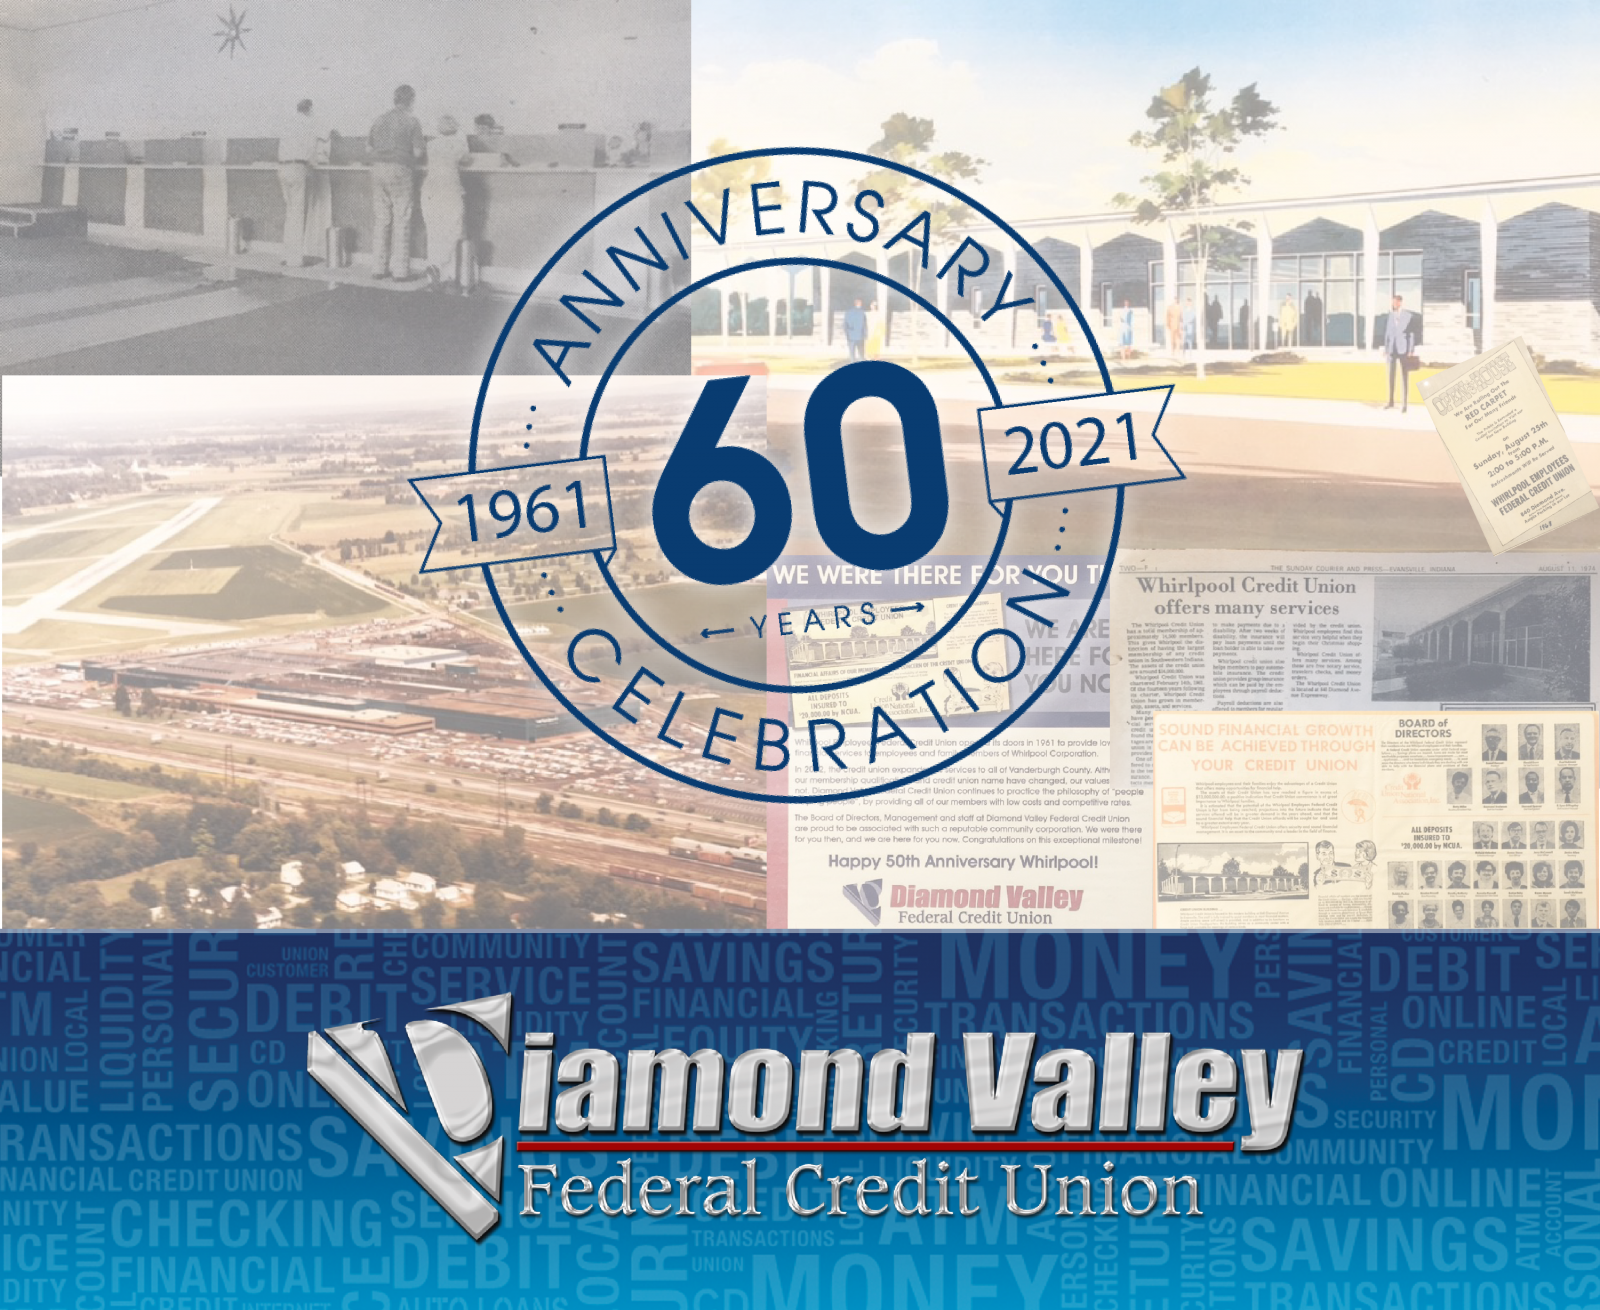 Diamond Valley Federal Credit Union Celebrates 60 Years!